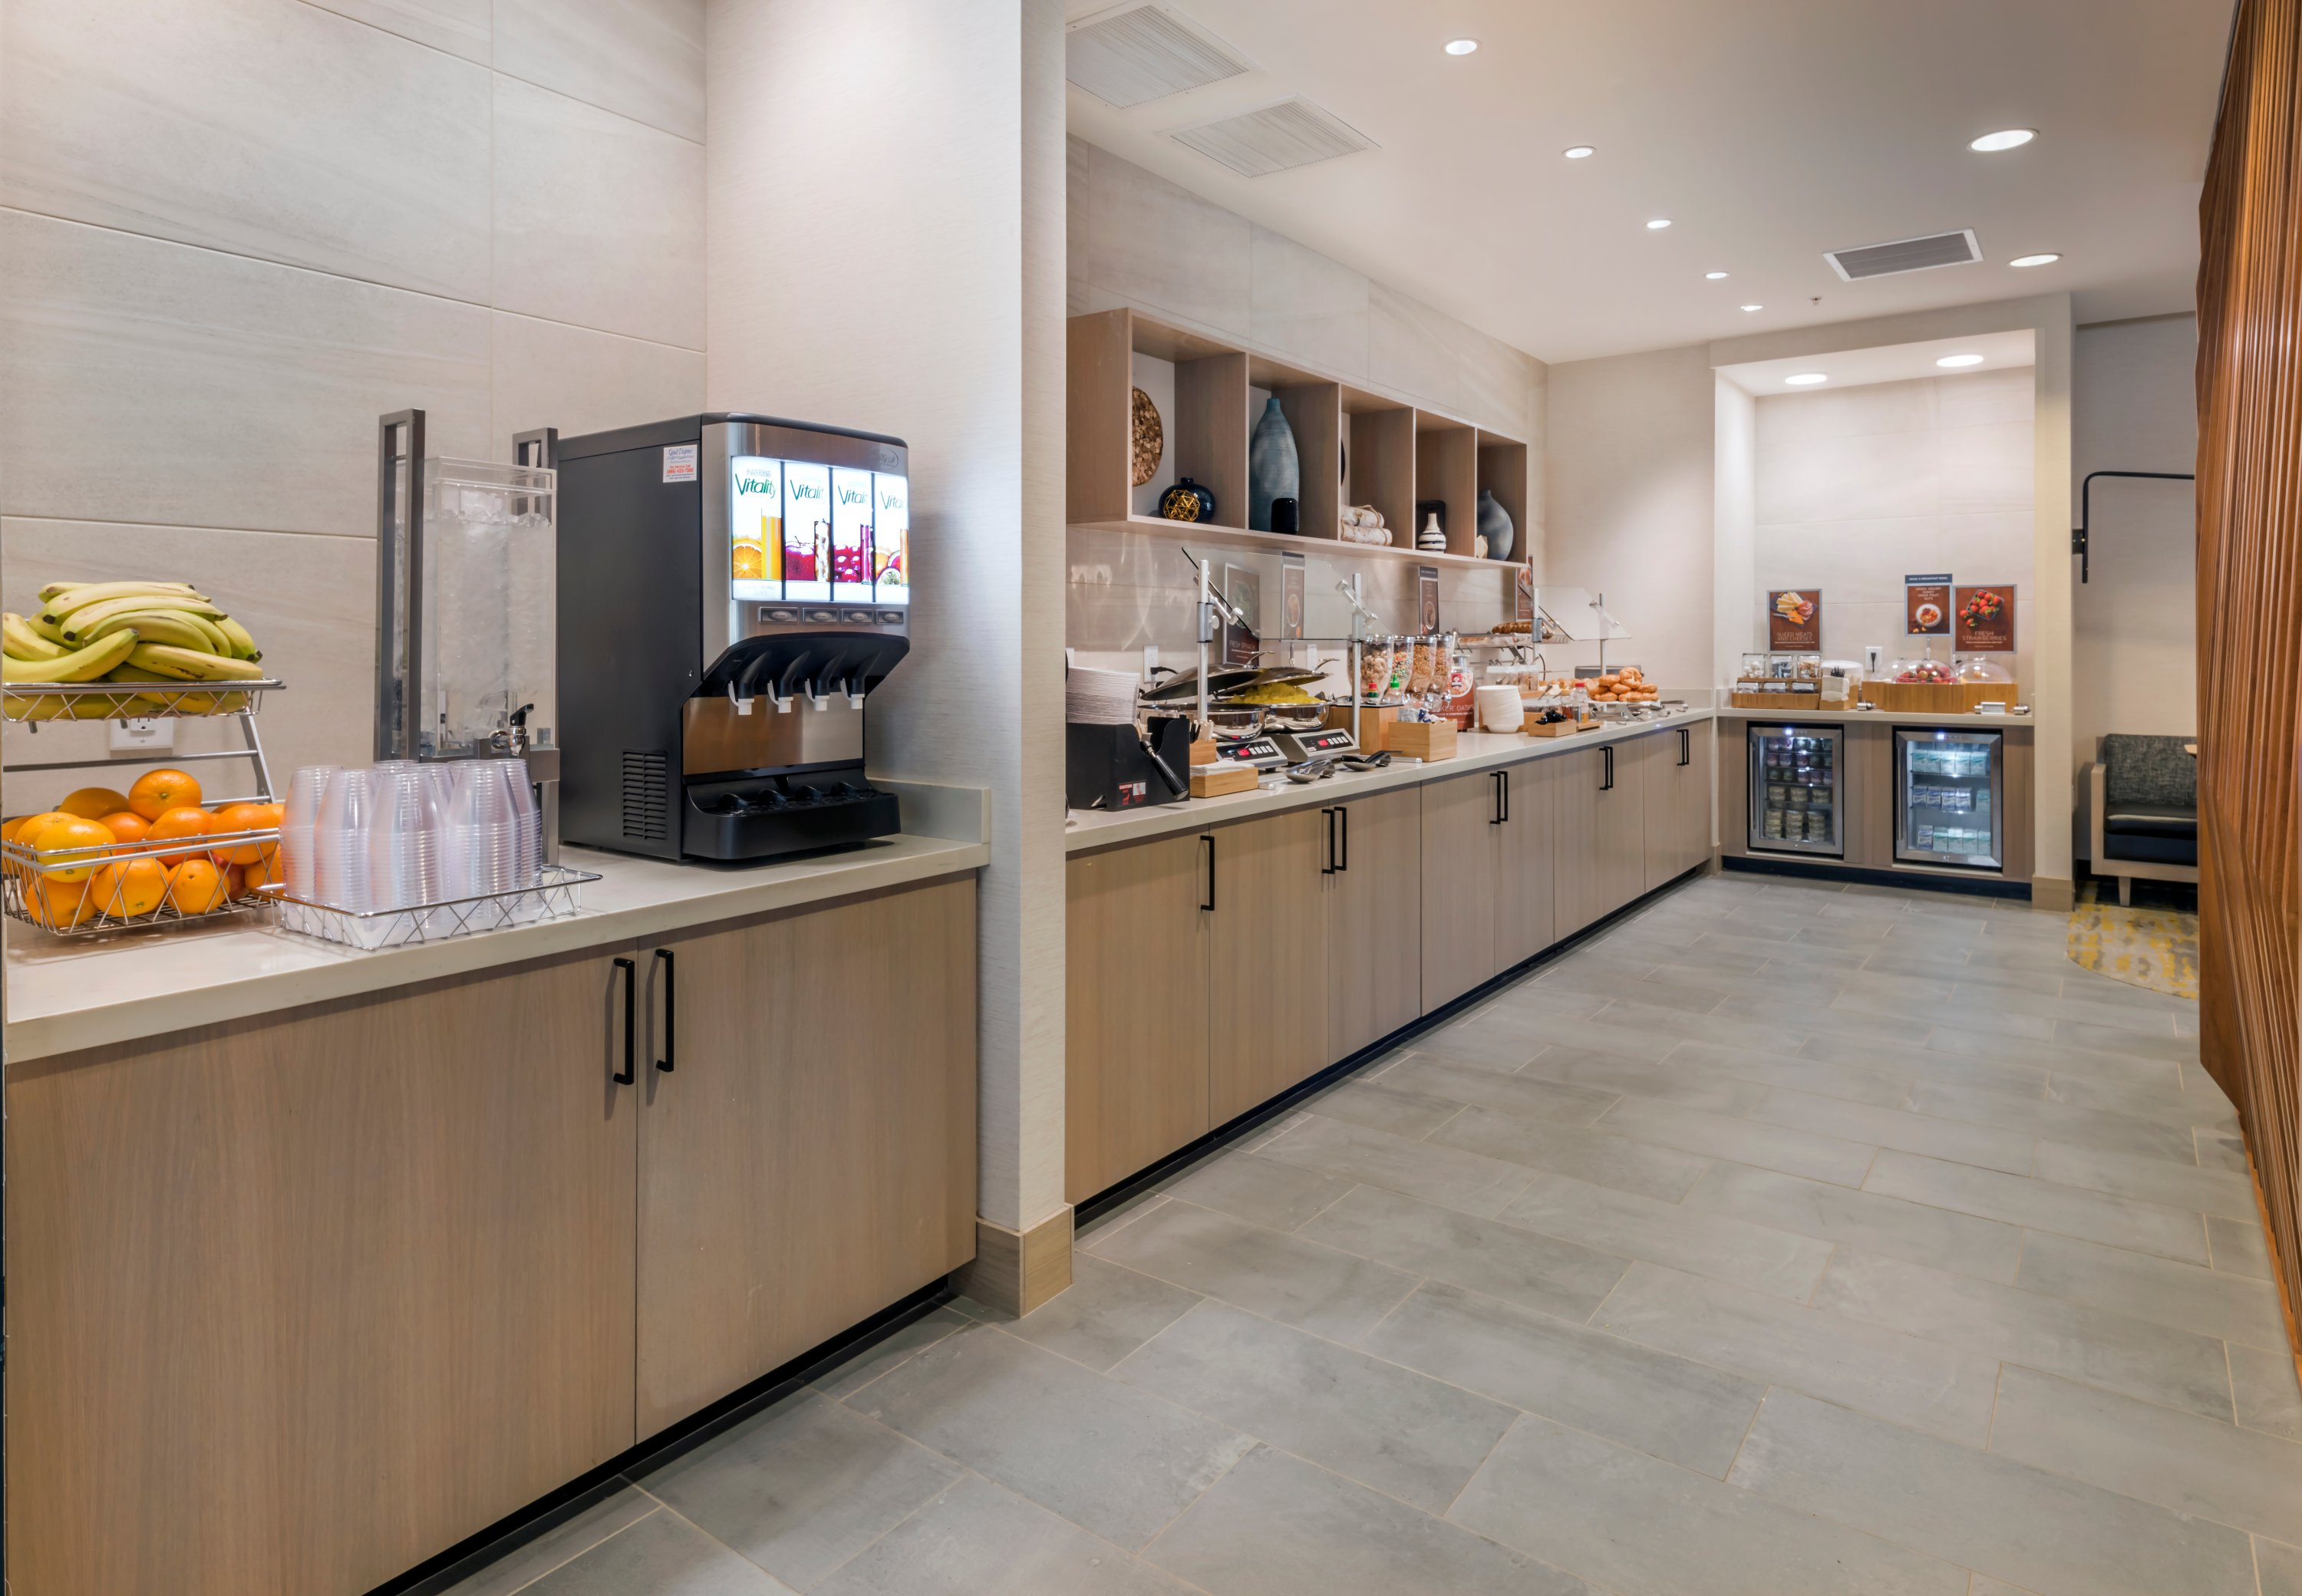 SpringHill Suites by Marriott Jackson Hole image 9